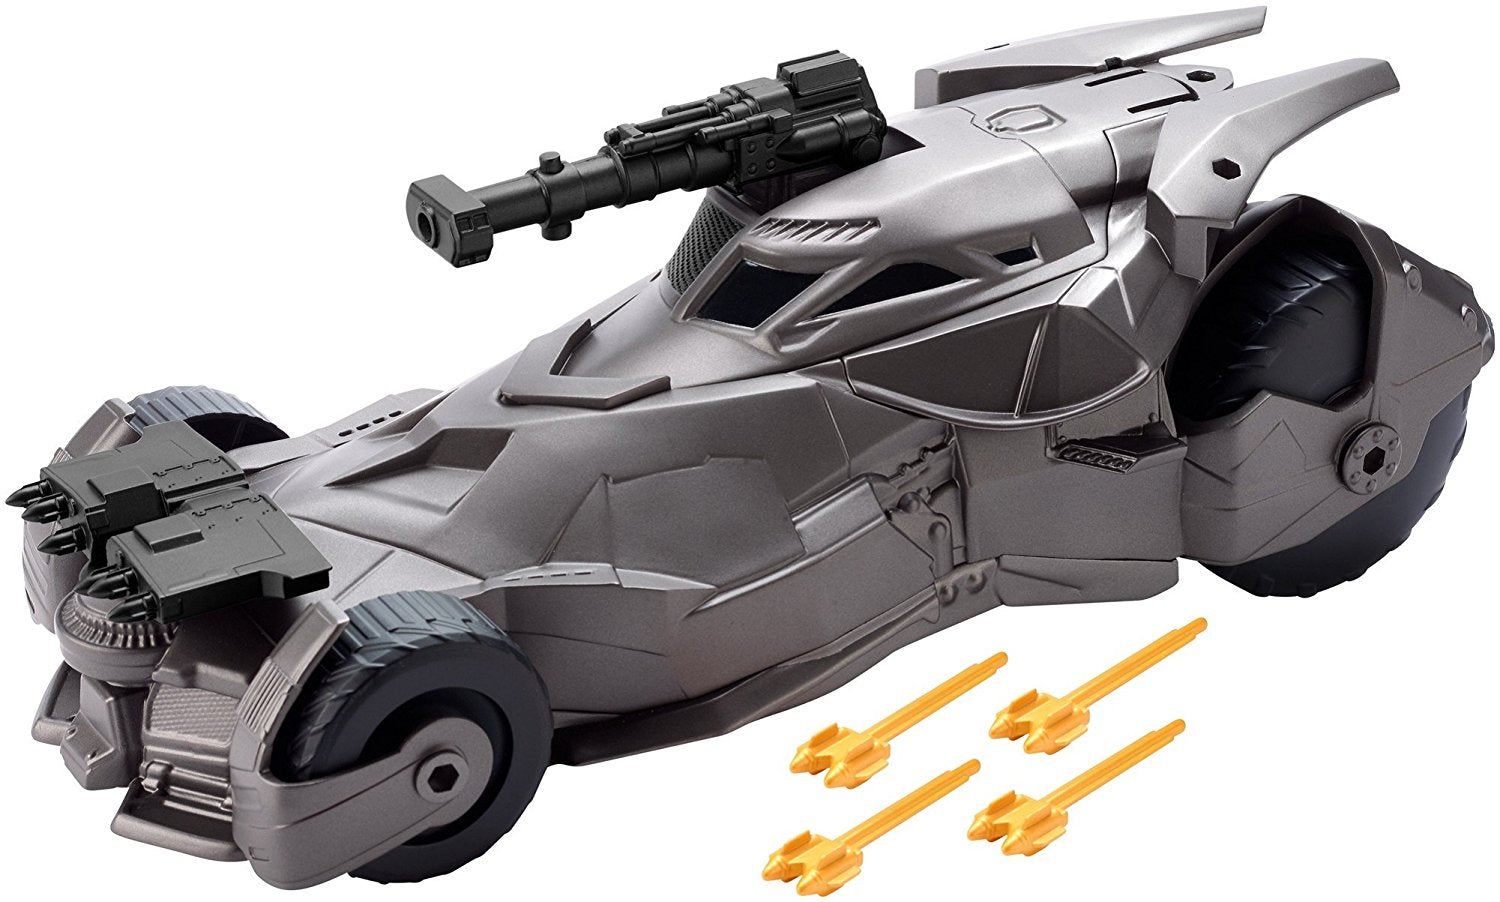 Mattel Justice League Mega Cannon Batmobile™ Vehicle FGG58